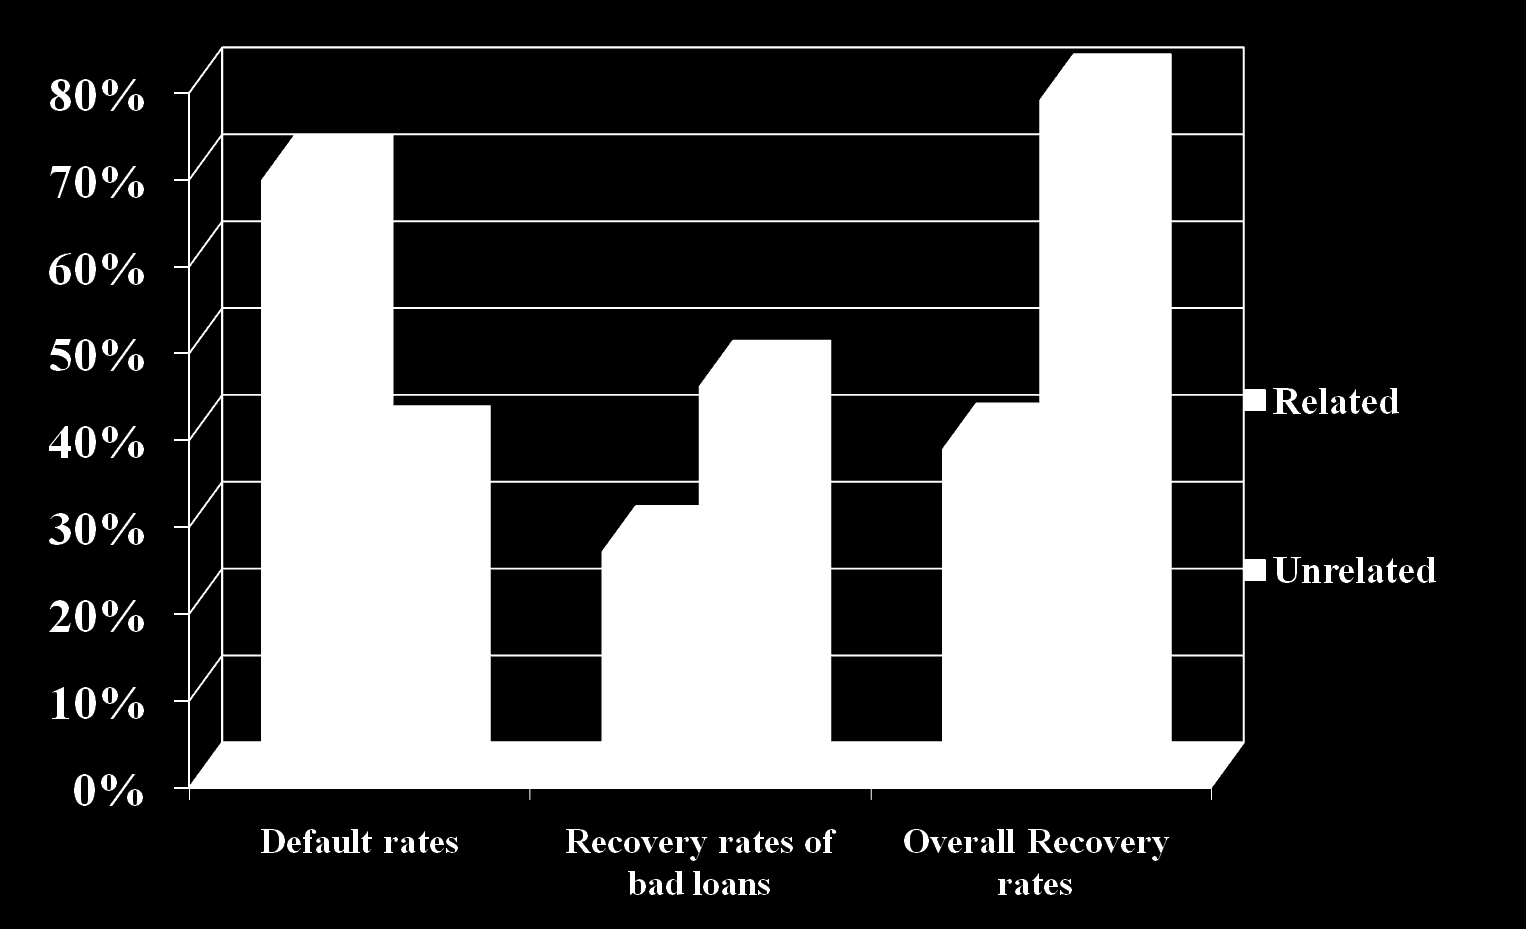 Default and Recovery Rates: